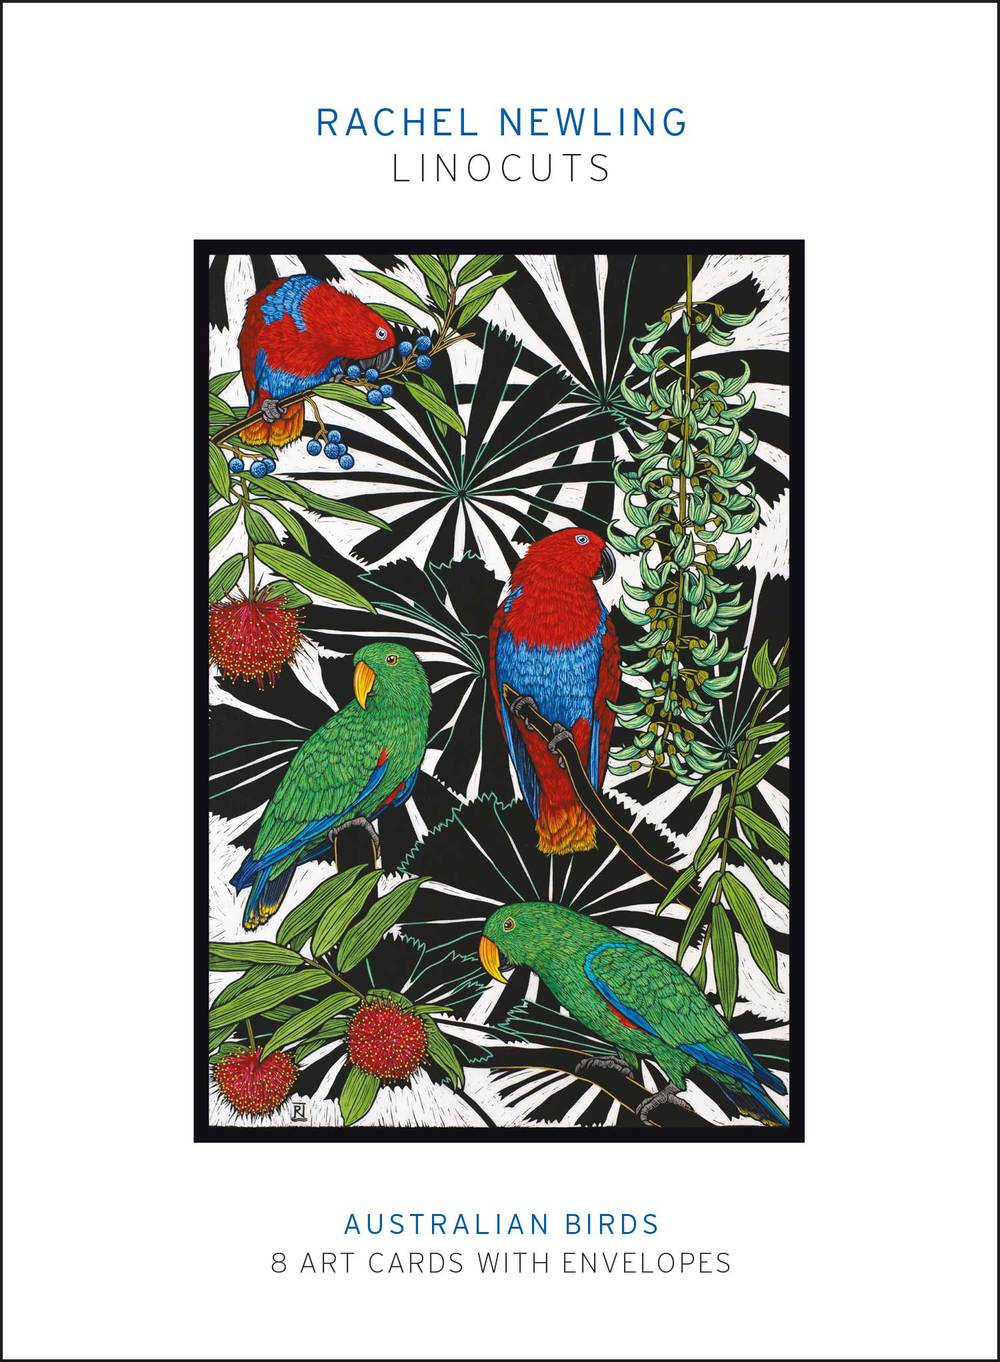 Australian Birds linocuts pack